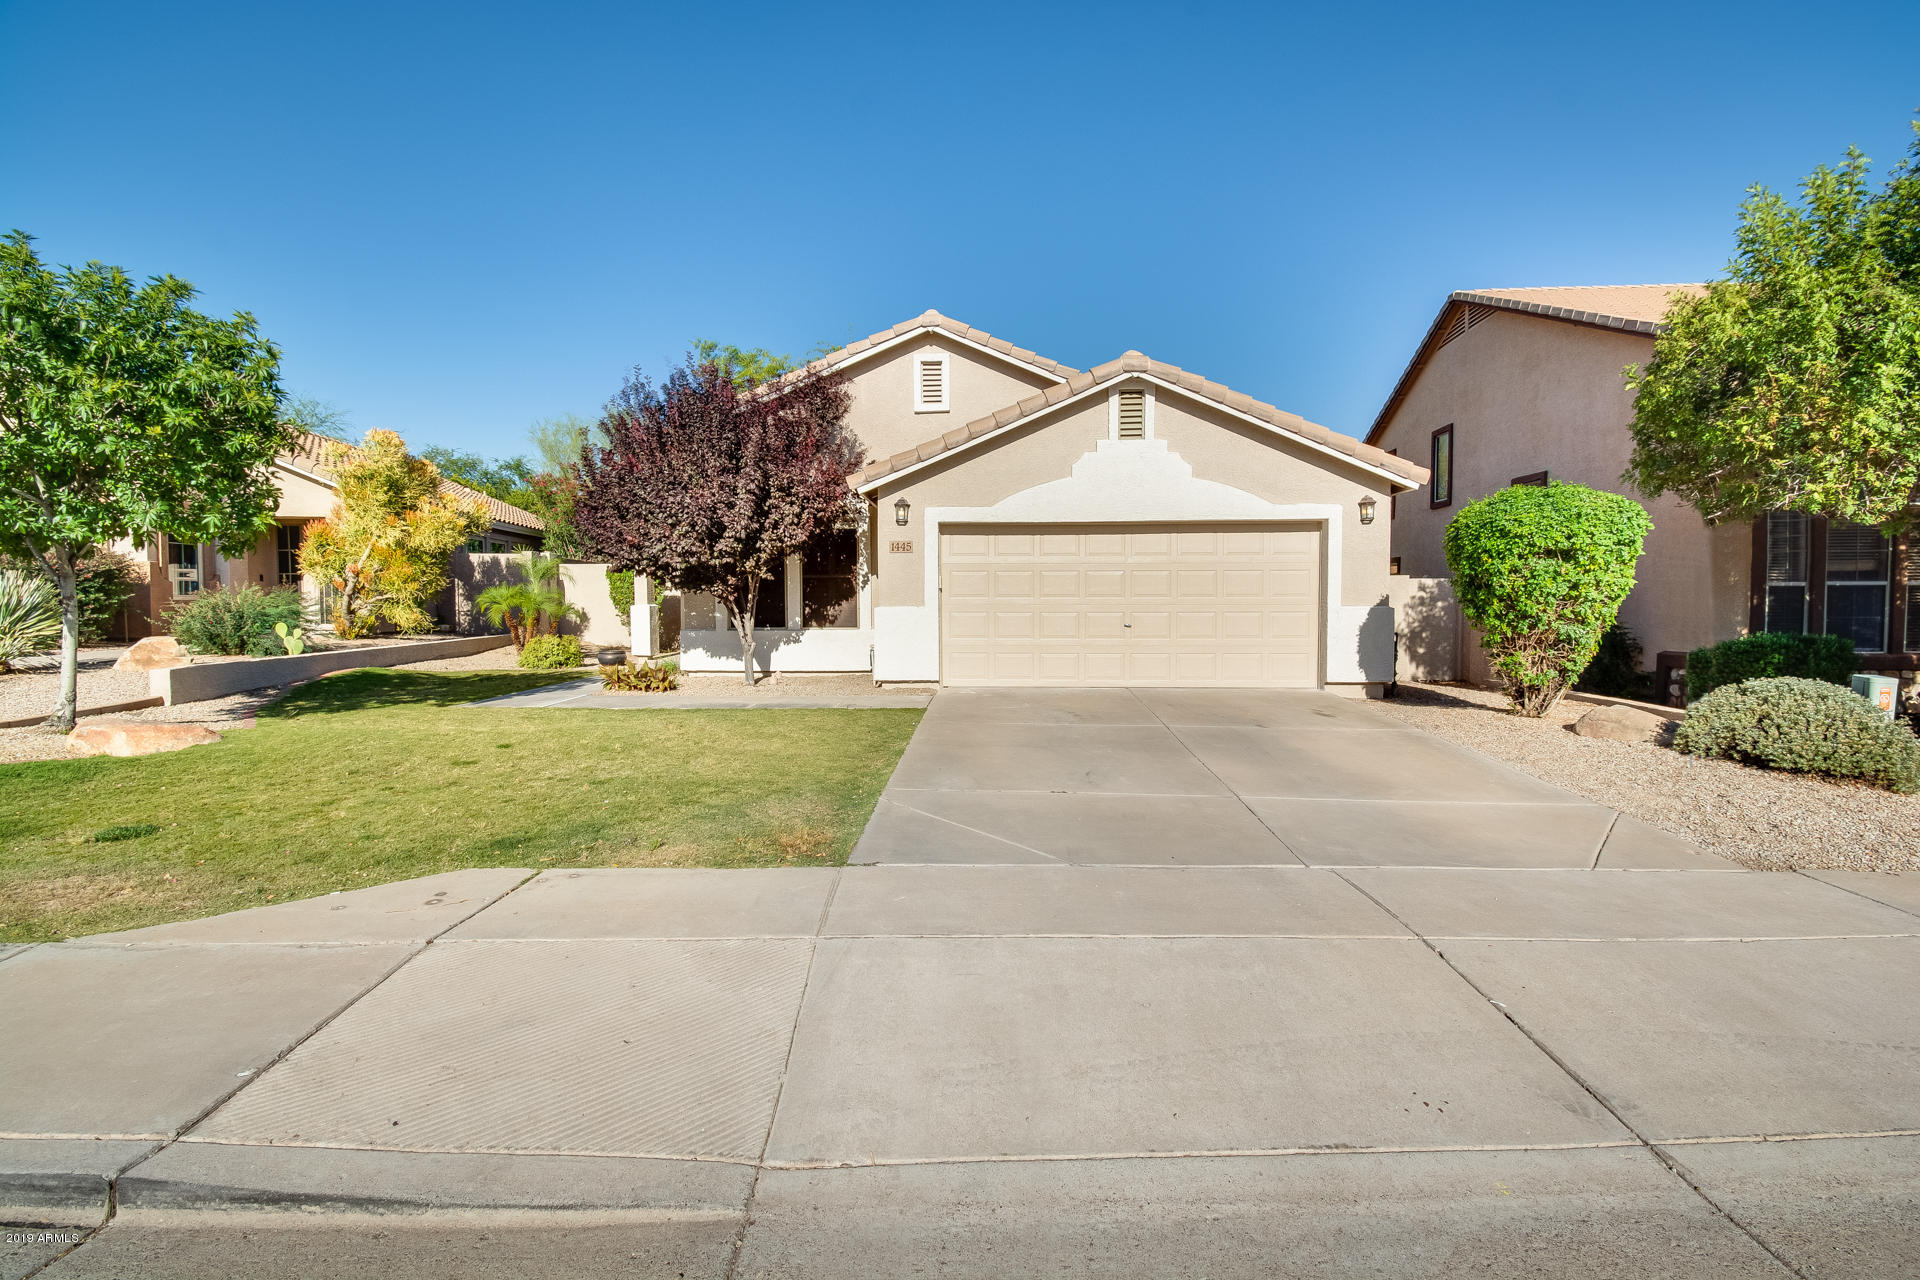 Photo of 1445 N Sierra Heights, Mesa, AZ 85207